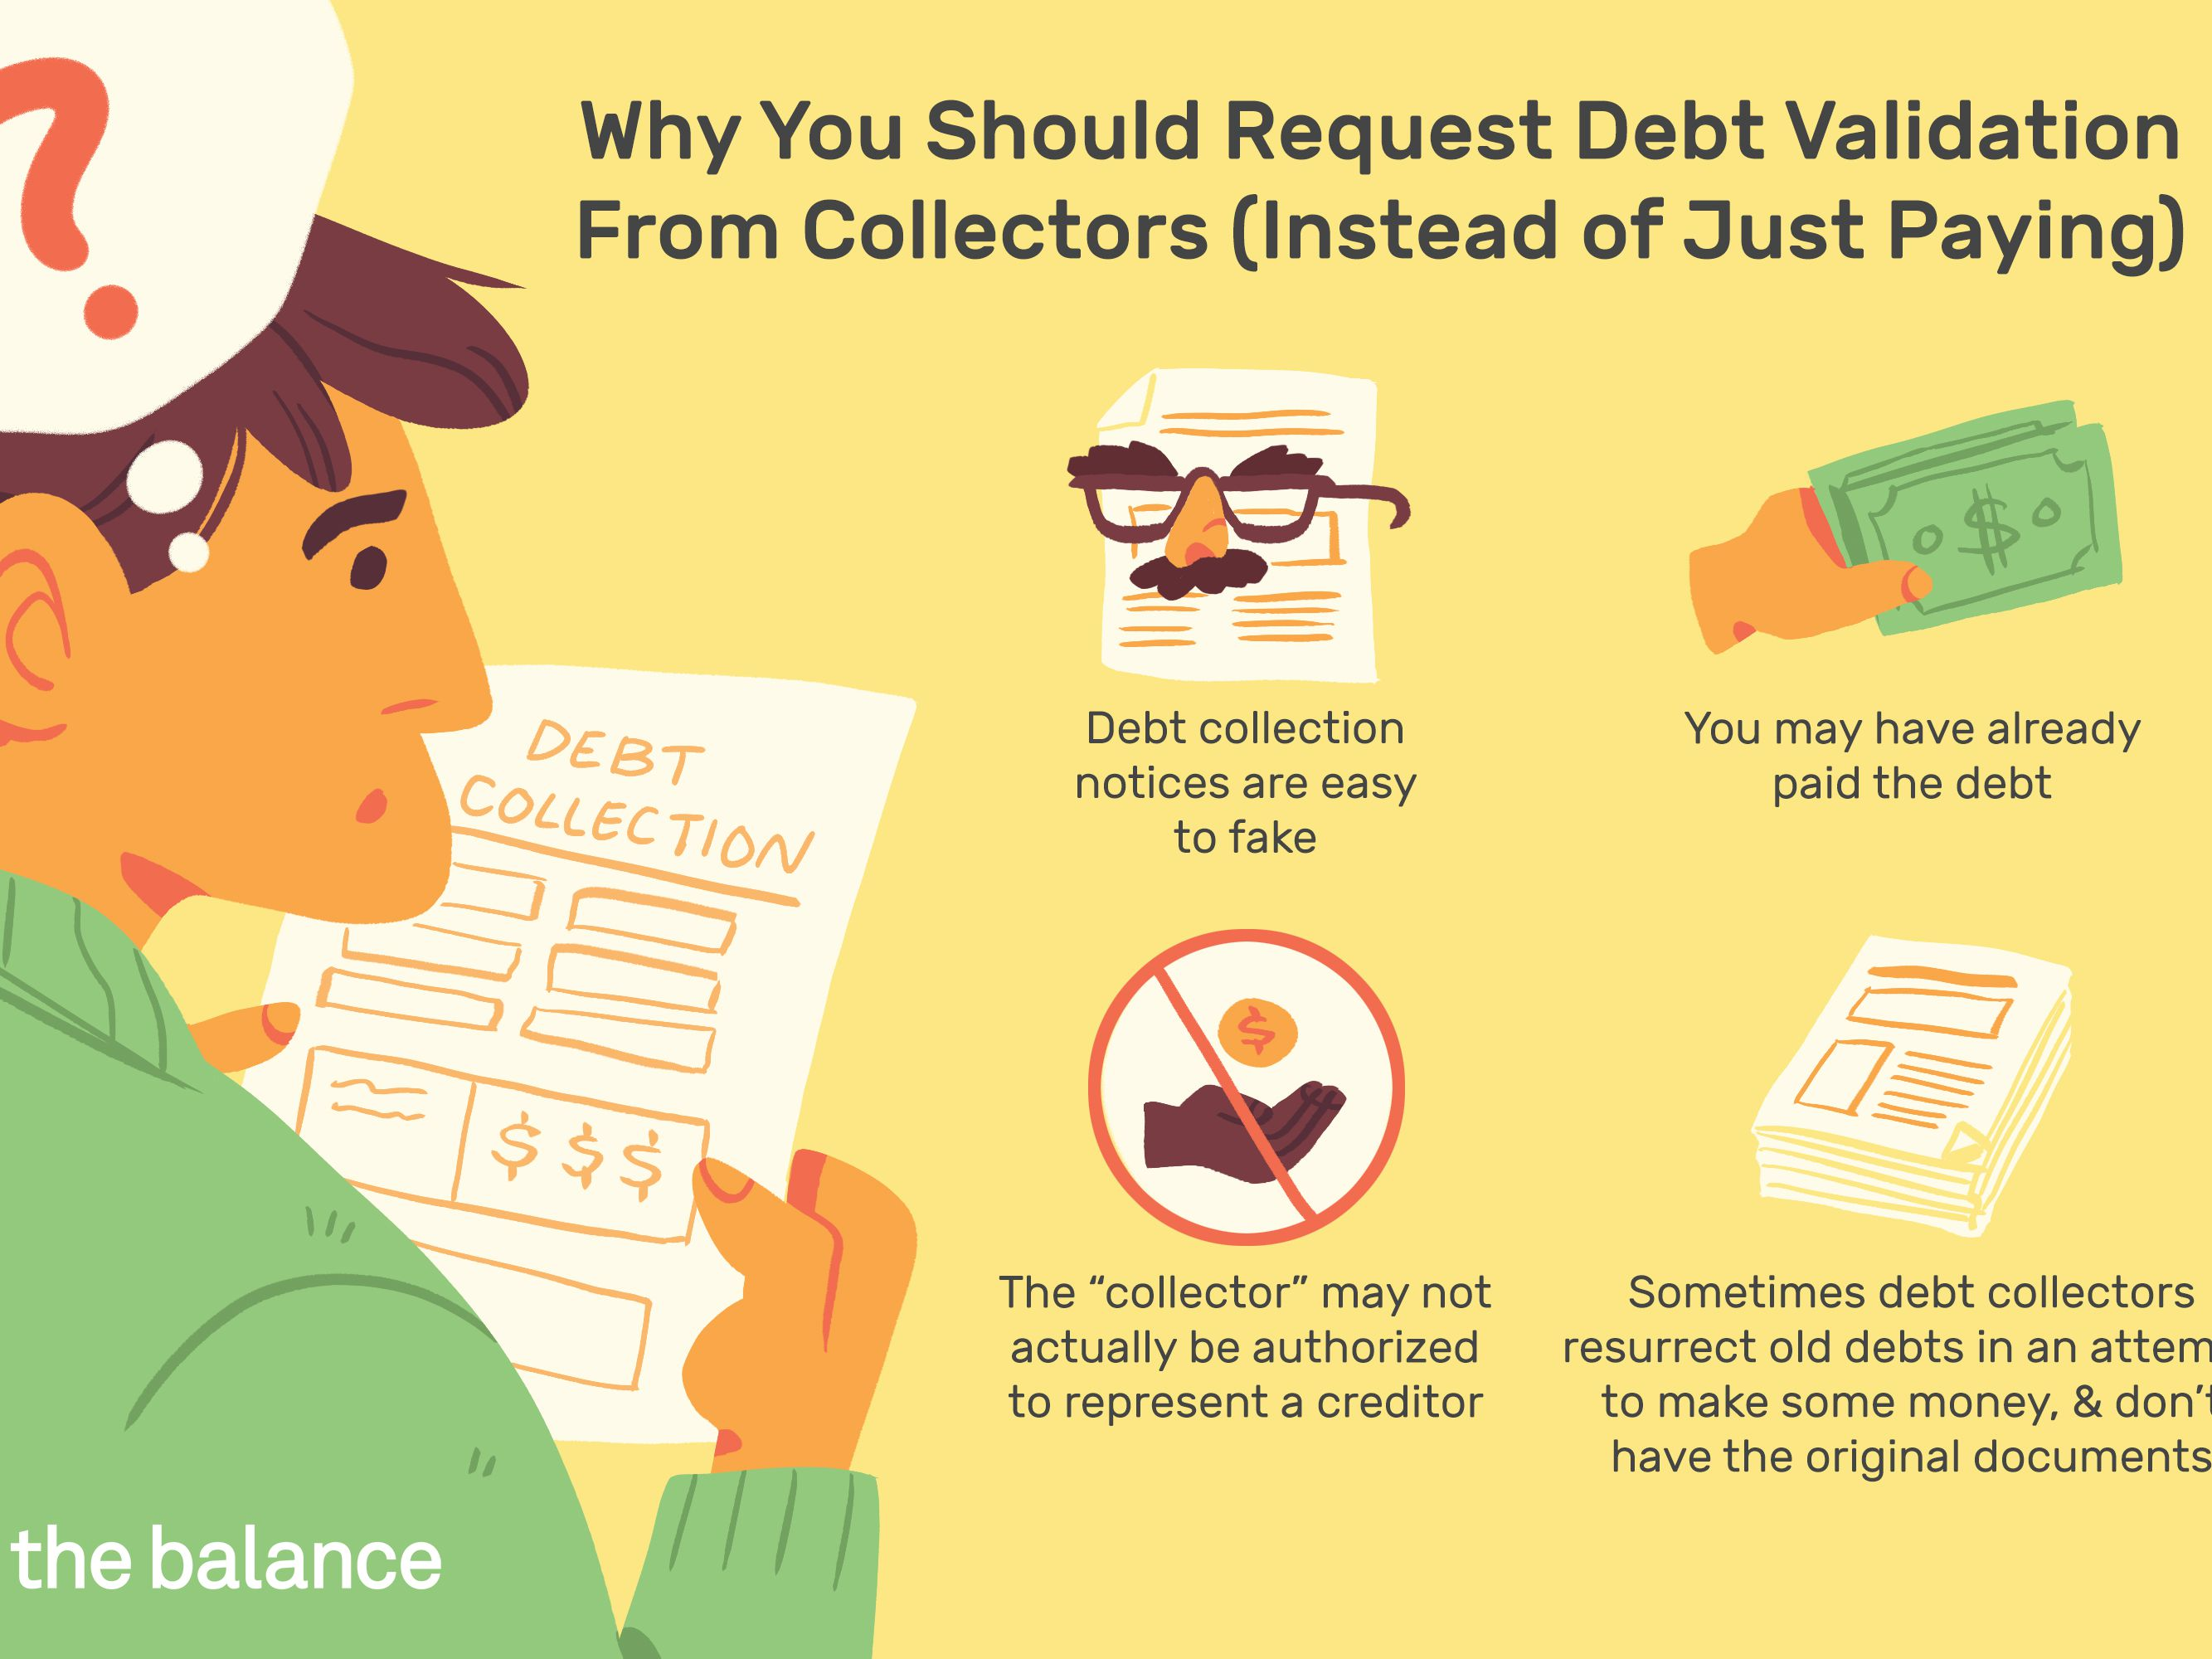 Validating debt dating for over fifties